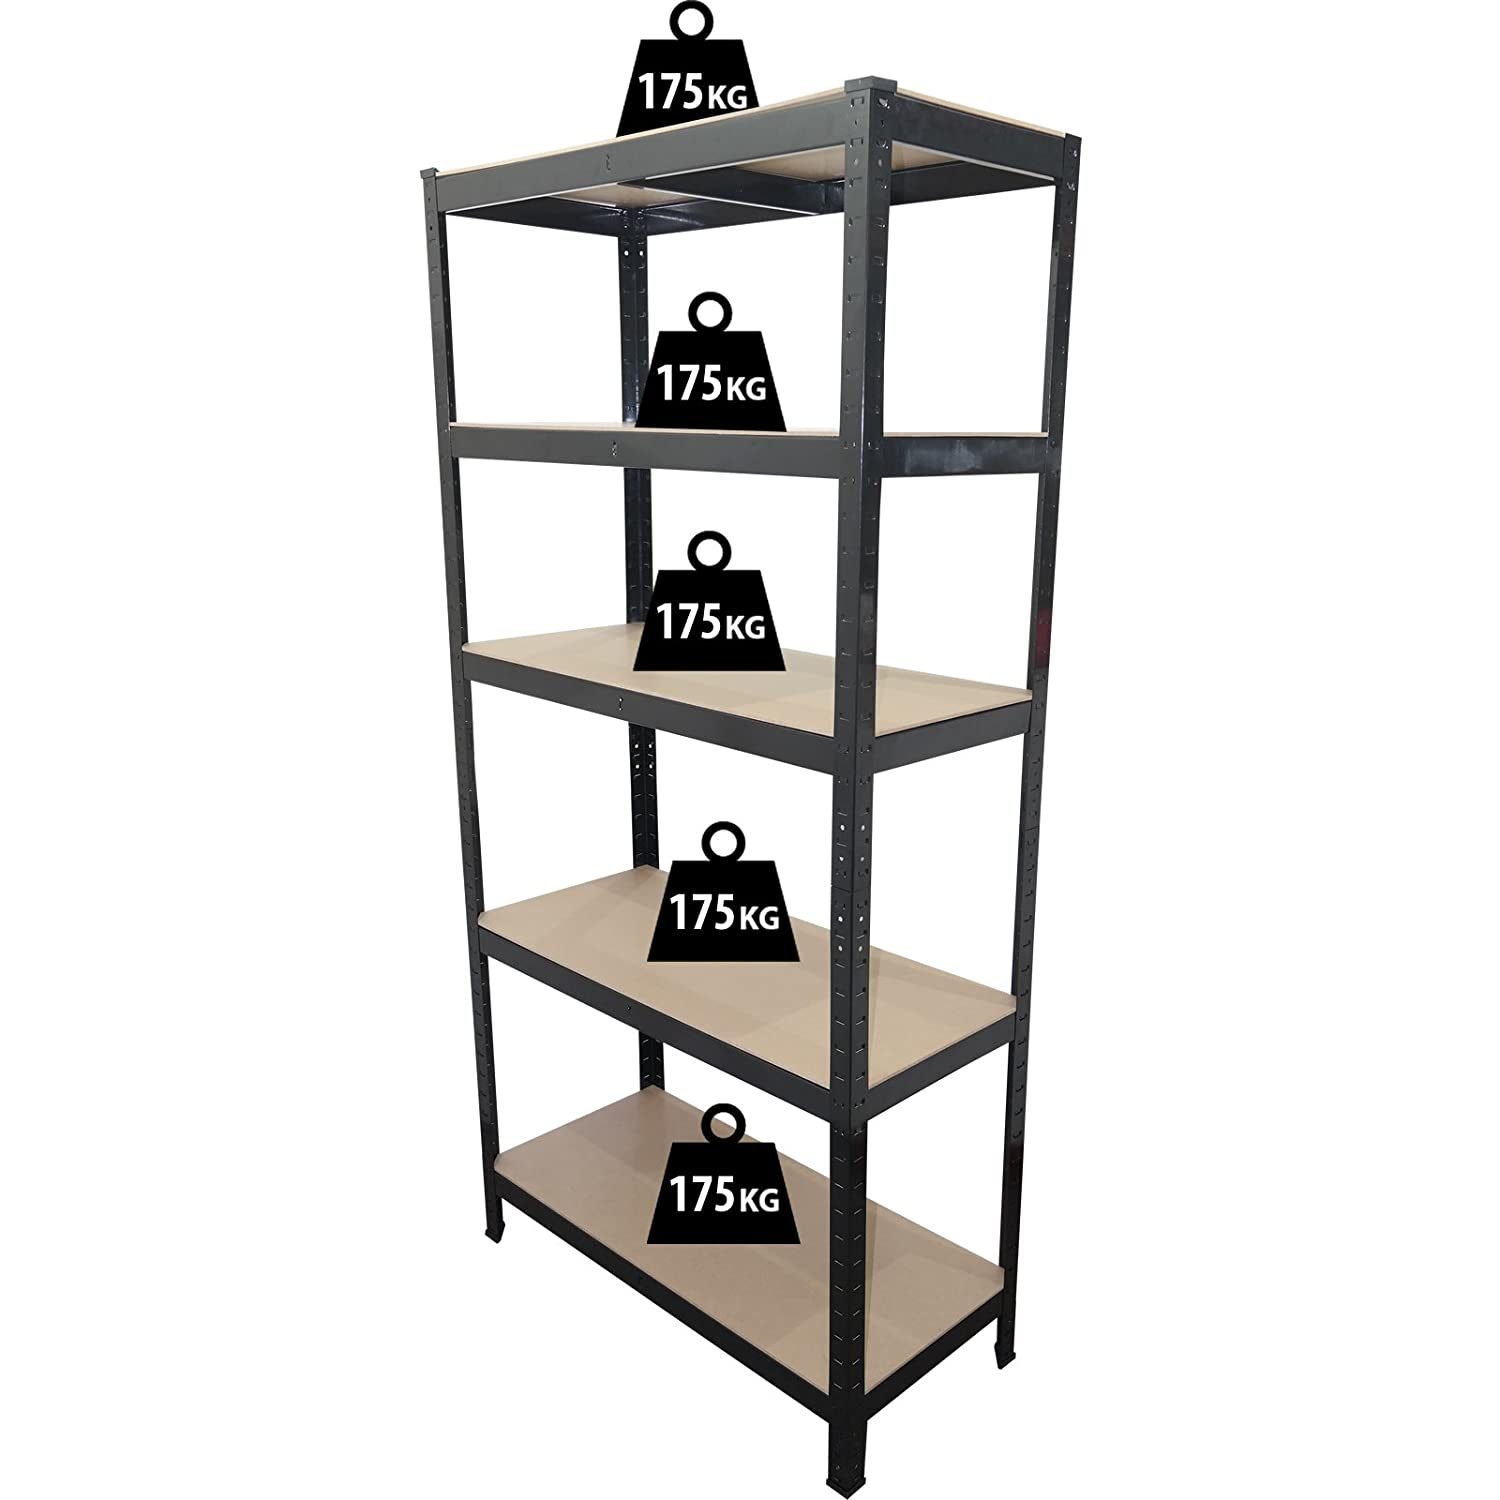 1 8m 5 tier heavy duty metal shelving unit industrial boltless shelves storage amazon co uk diy tools